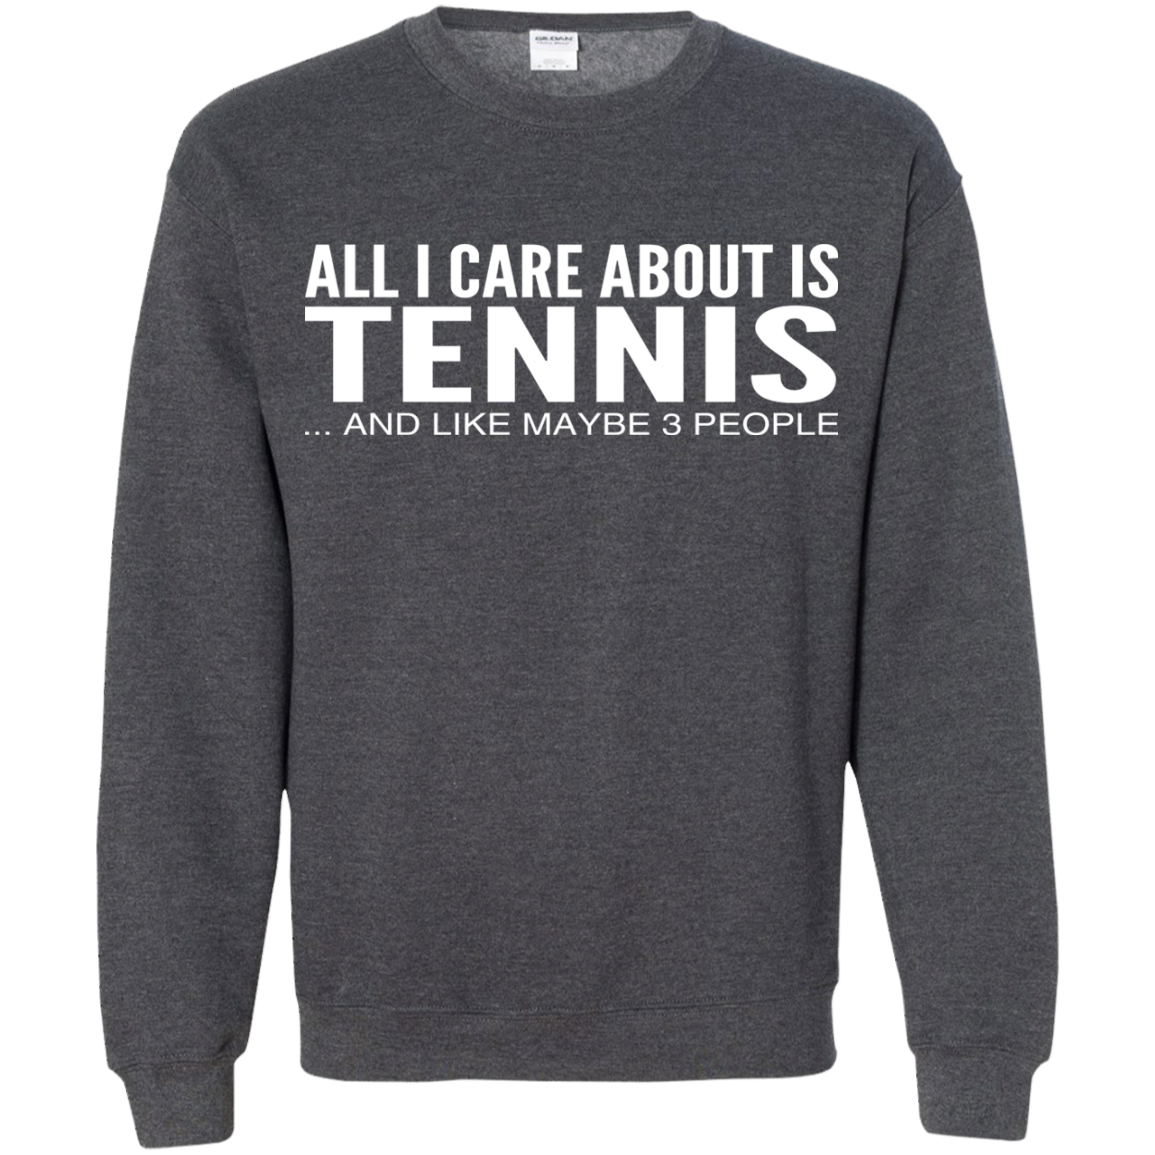 All I Care About Is Tennis And Like Maybe 3 People Sweatshirts